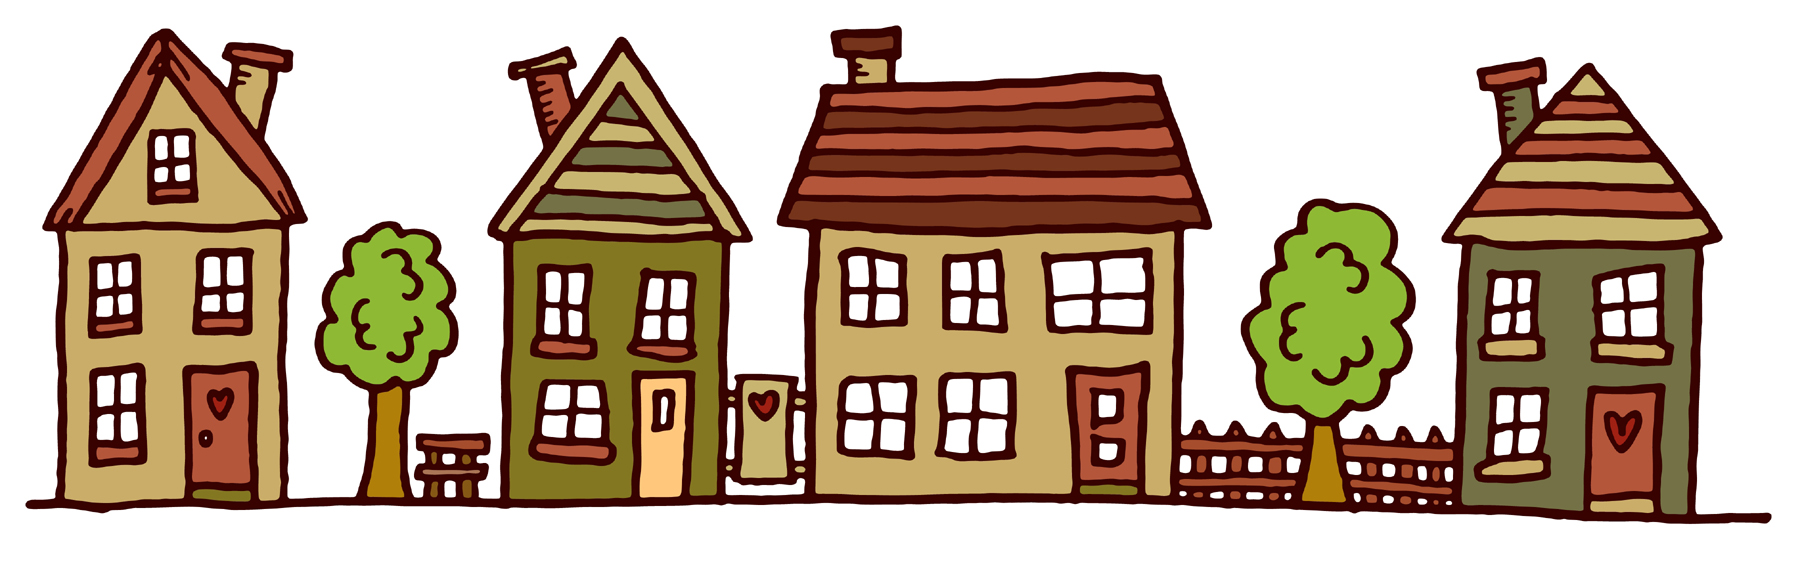 Images Of Houses In A Row - ClipArt Best